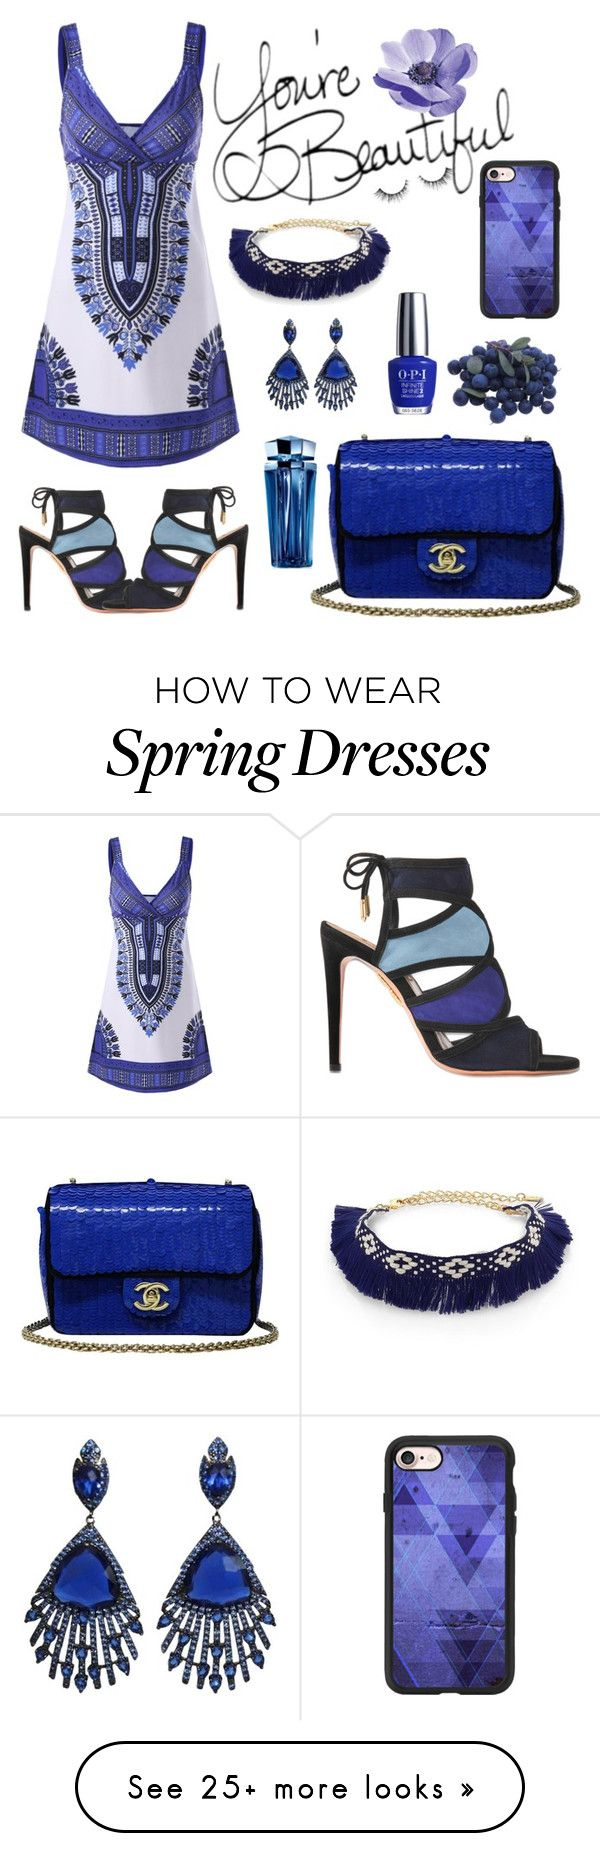 """Beautiful Blues"" by kittyflare on Polyvore featuring Ettika, Aquazzura, Chanel, OPI, Casetify, Thierry Mugler and MemorableNight"